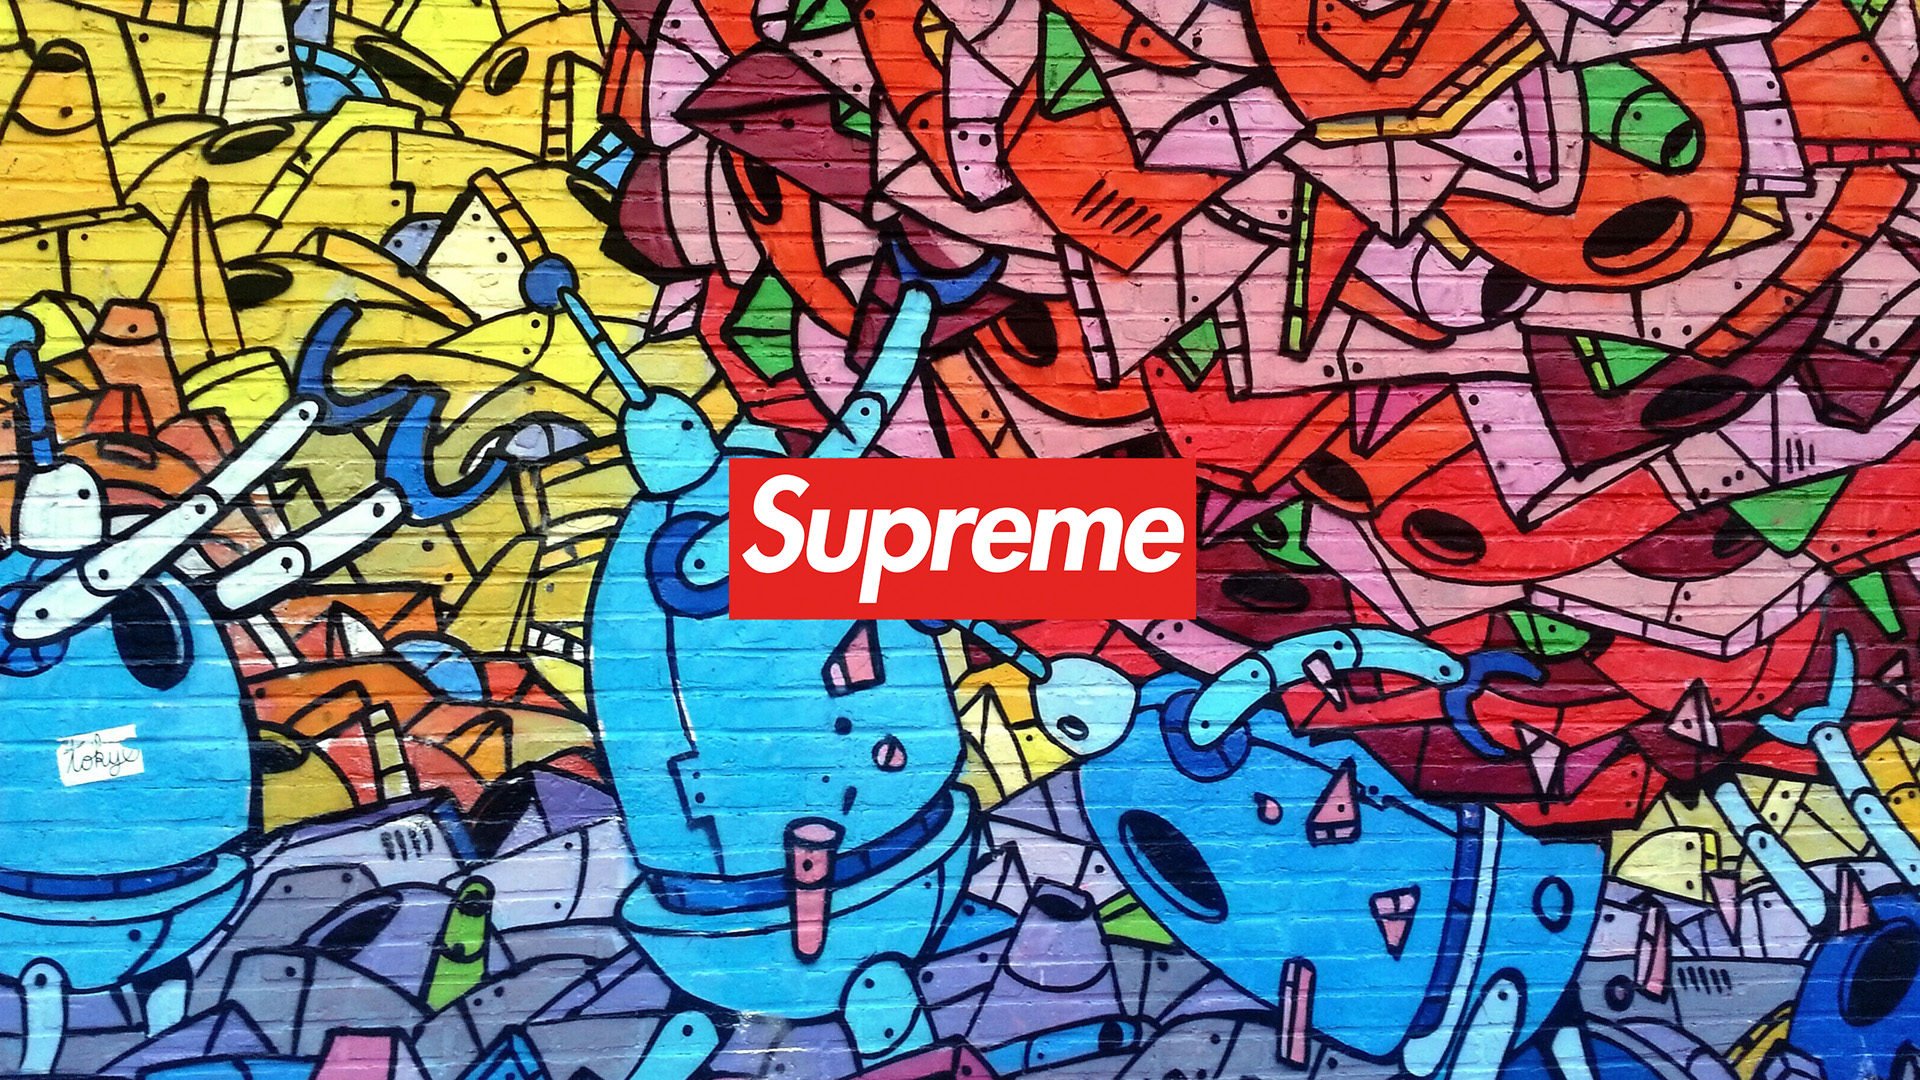 Supreme Graffiti